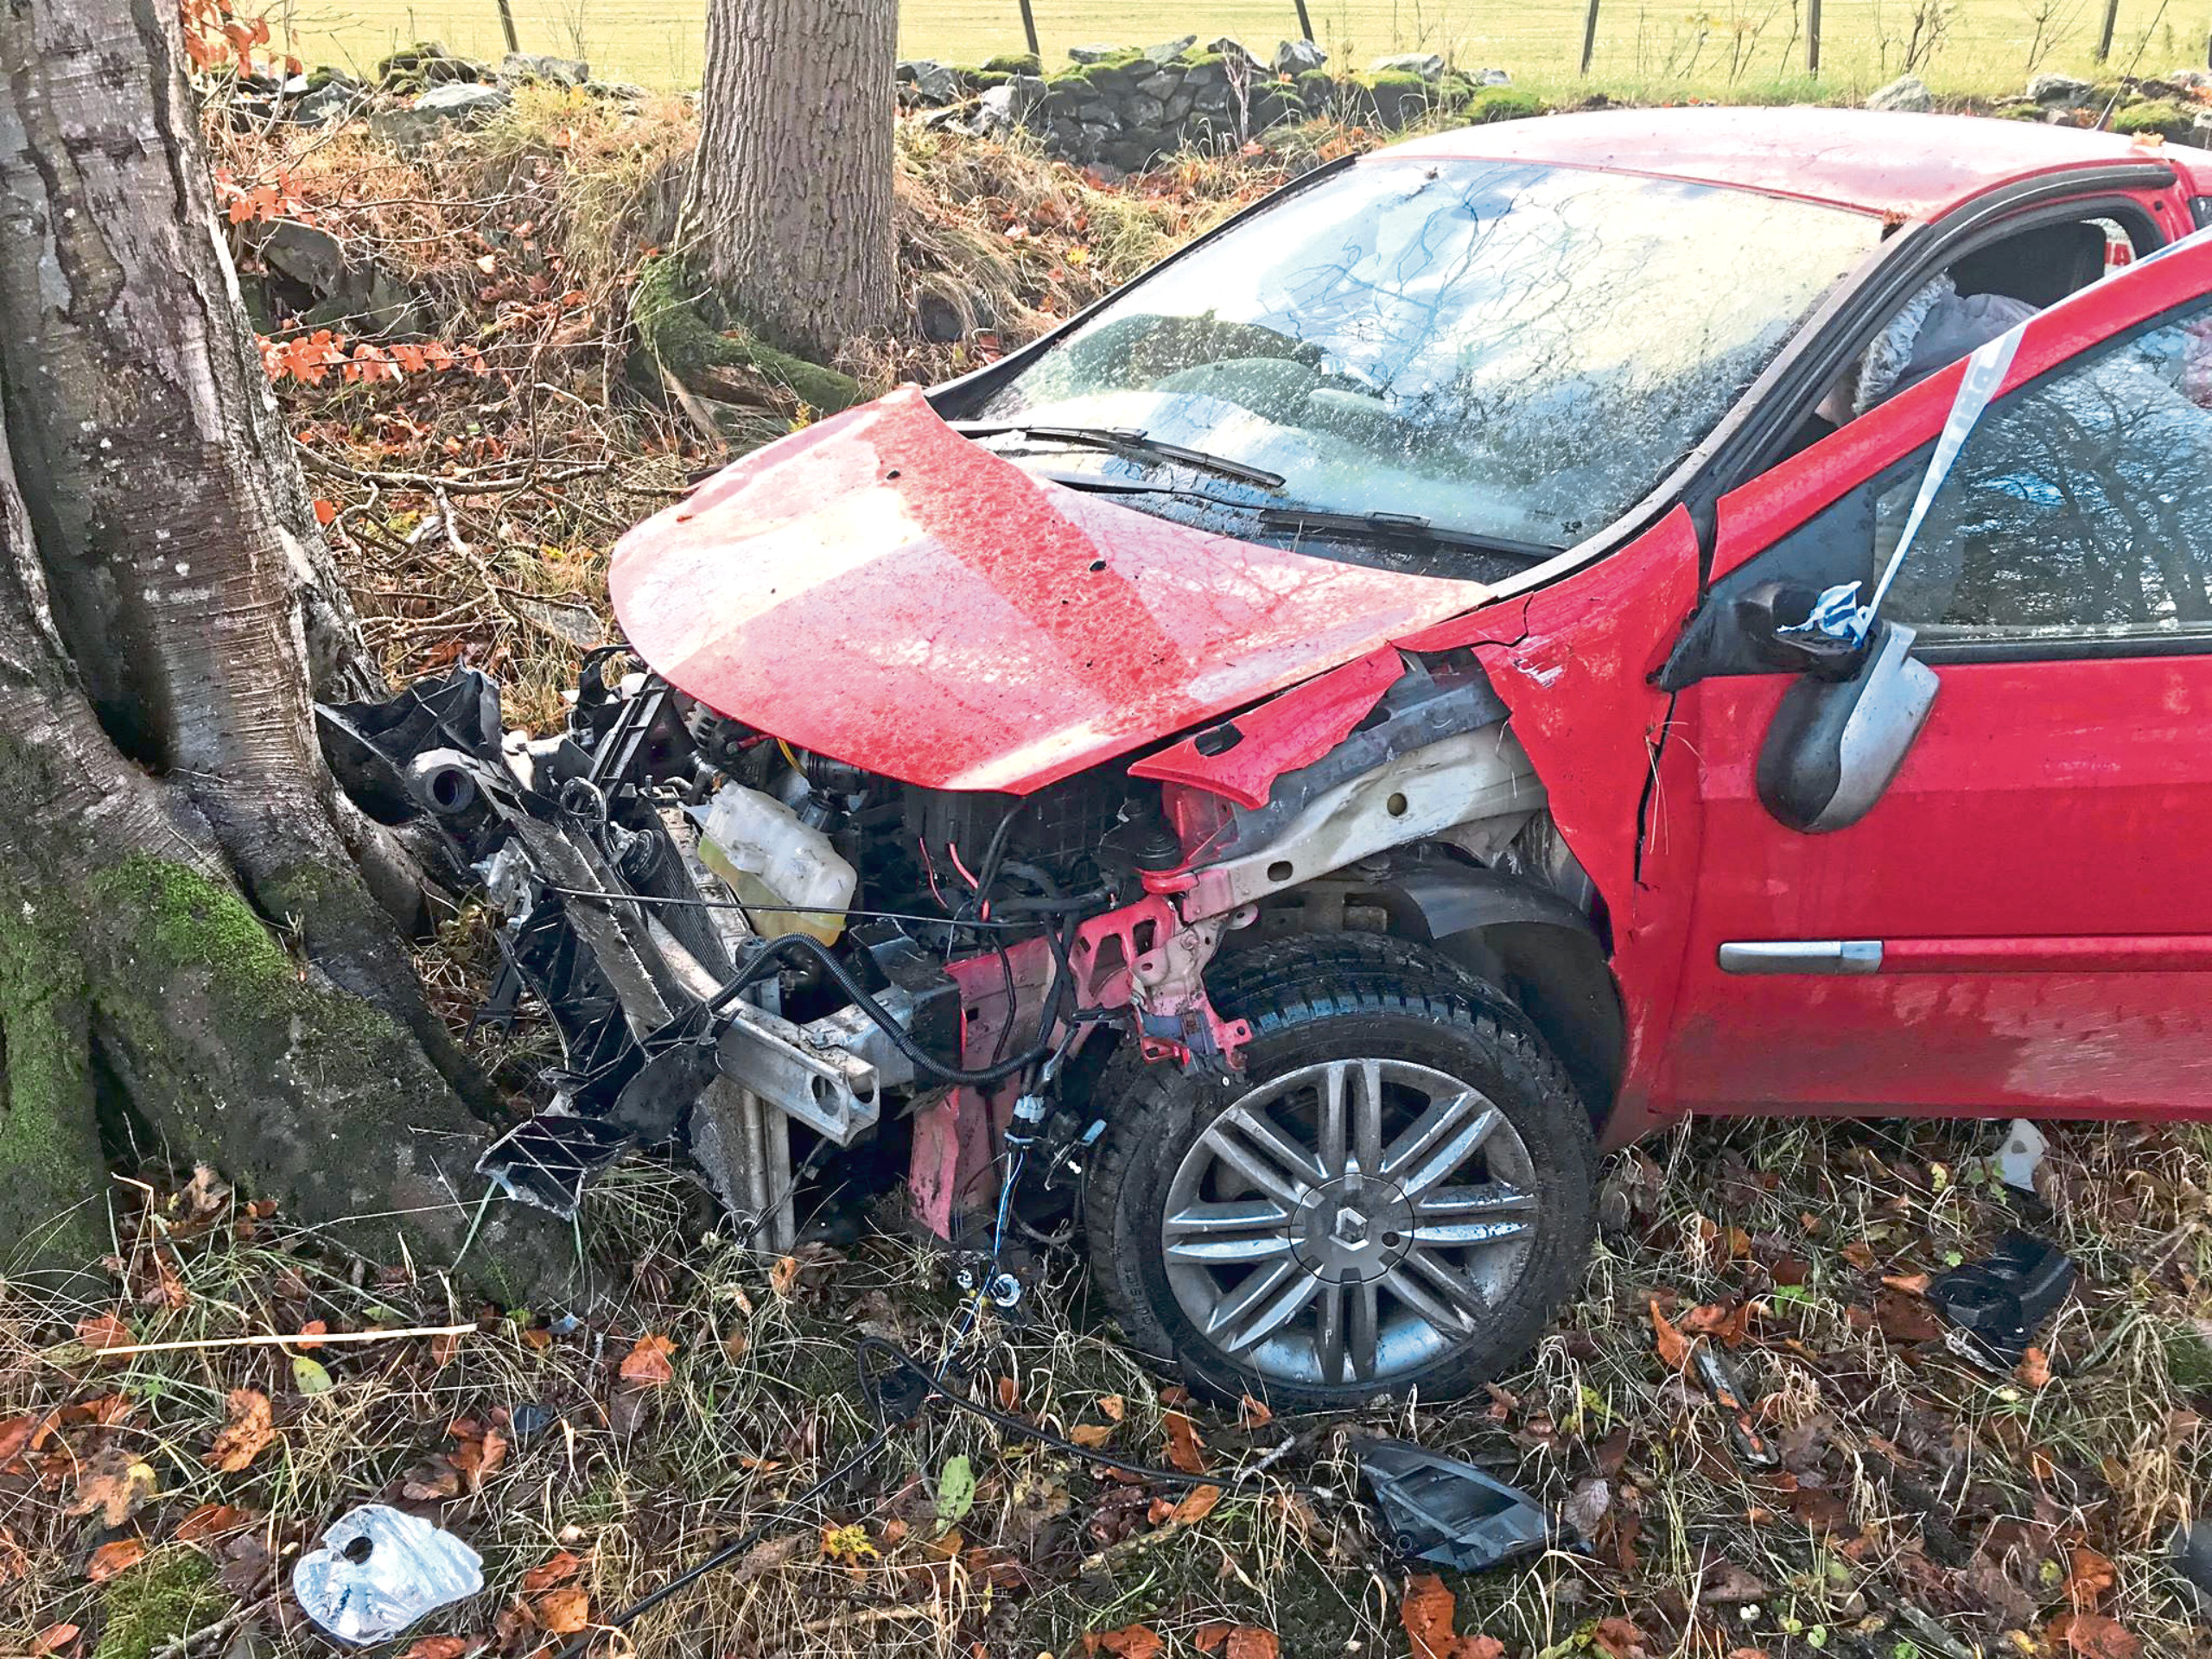 Millie's wrecked Renault Clio